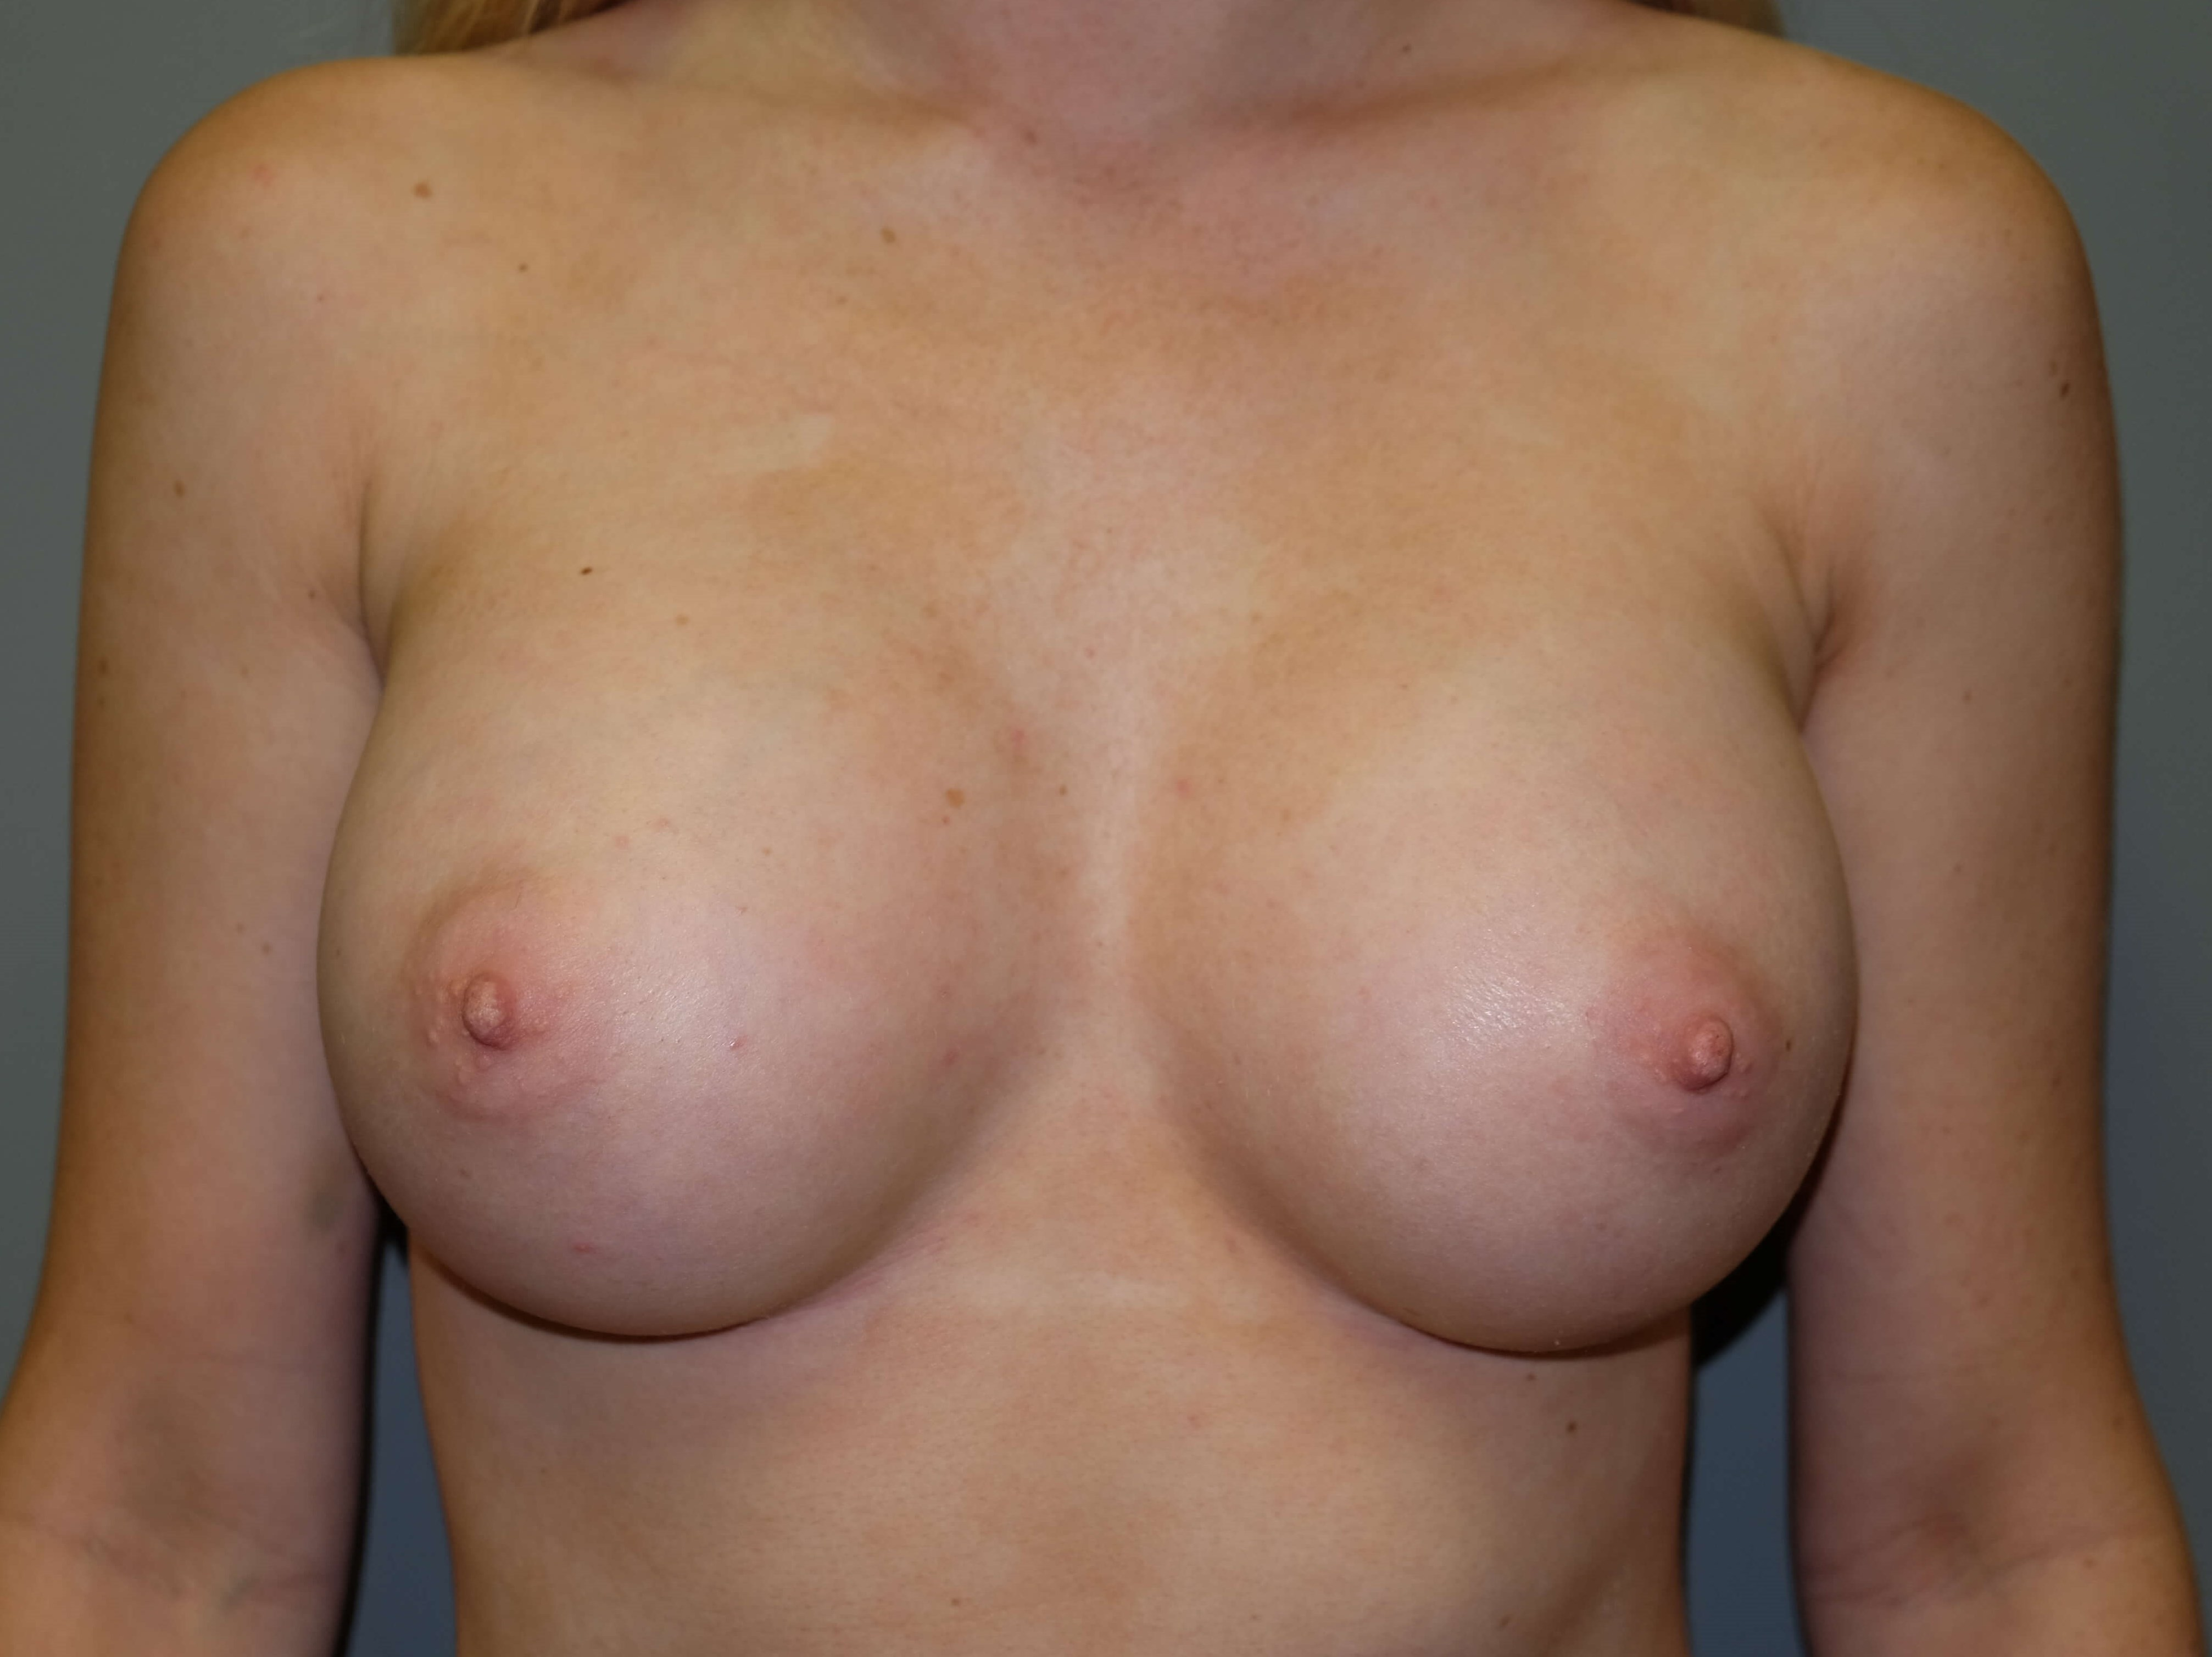 Breast Augmentation After 34 normal D cup